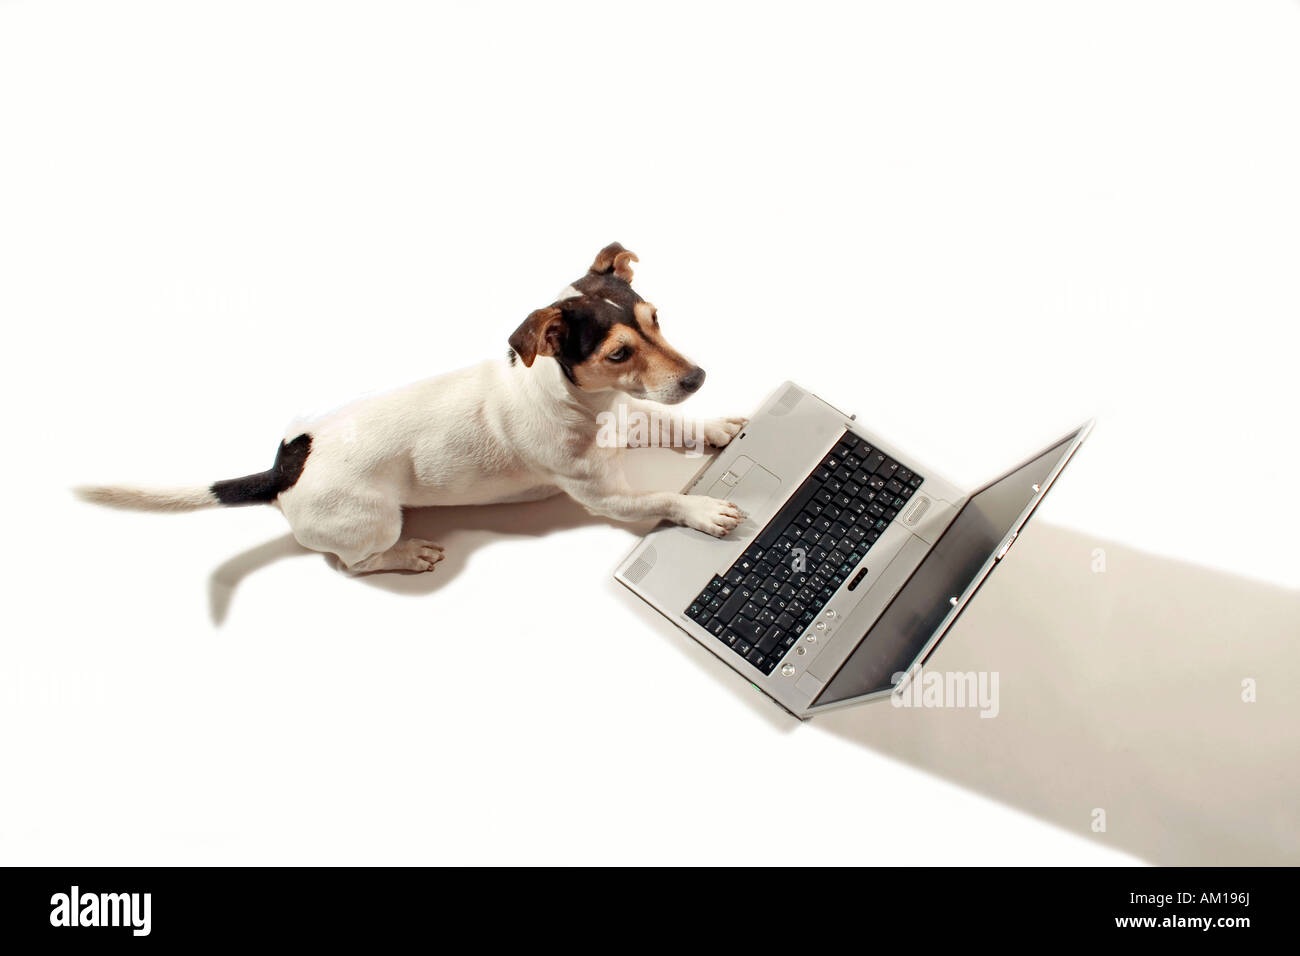 Jack Russell working on a notebook - Stock Image